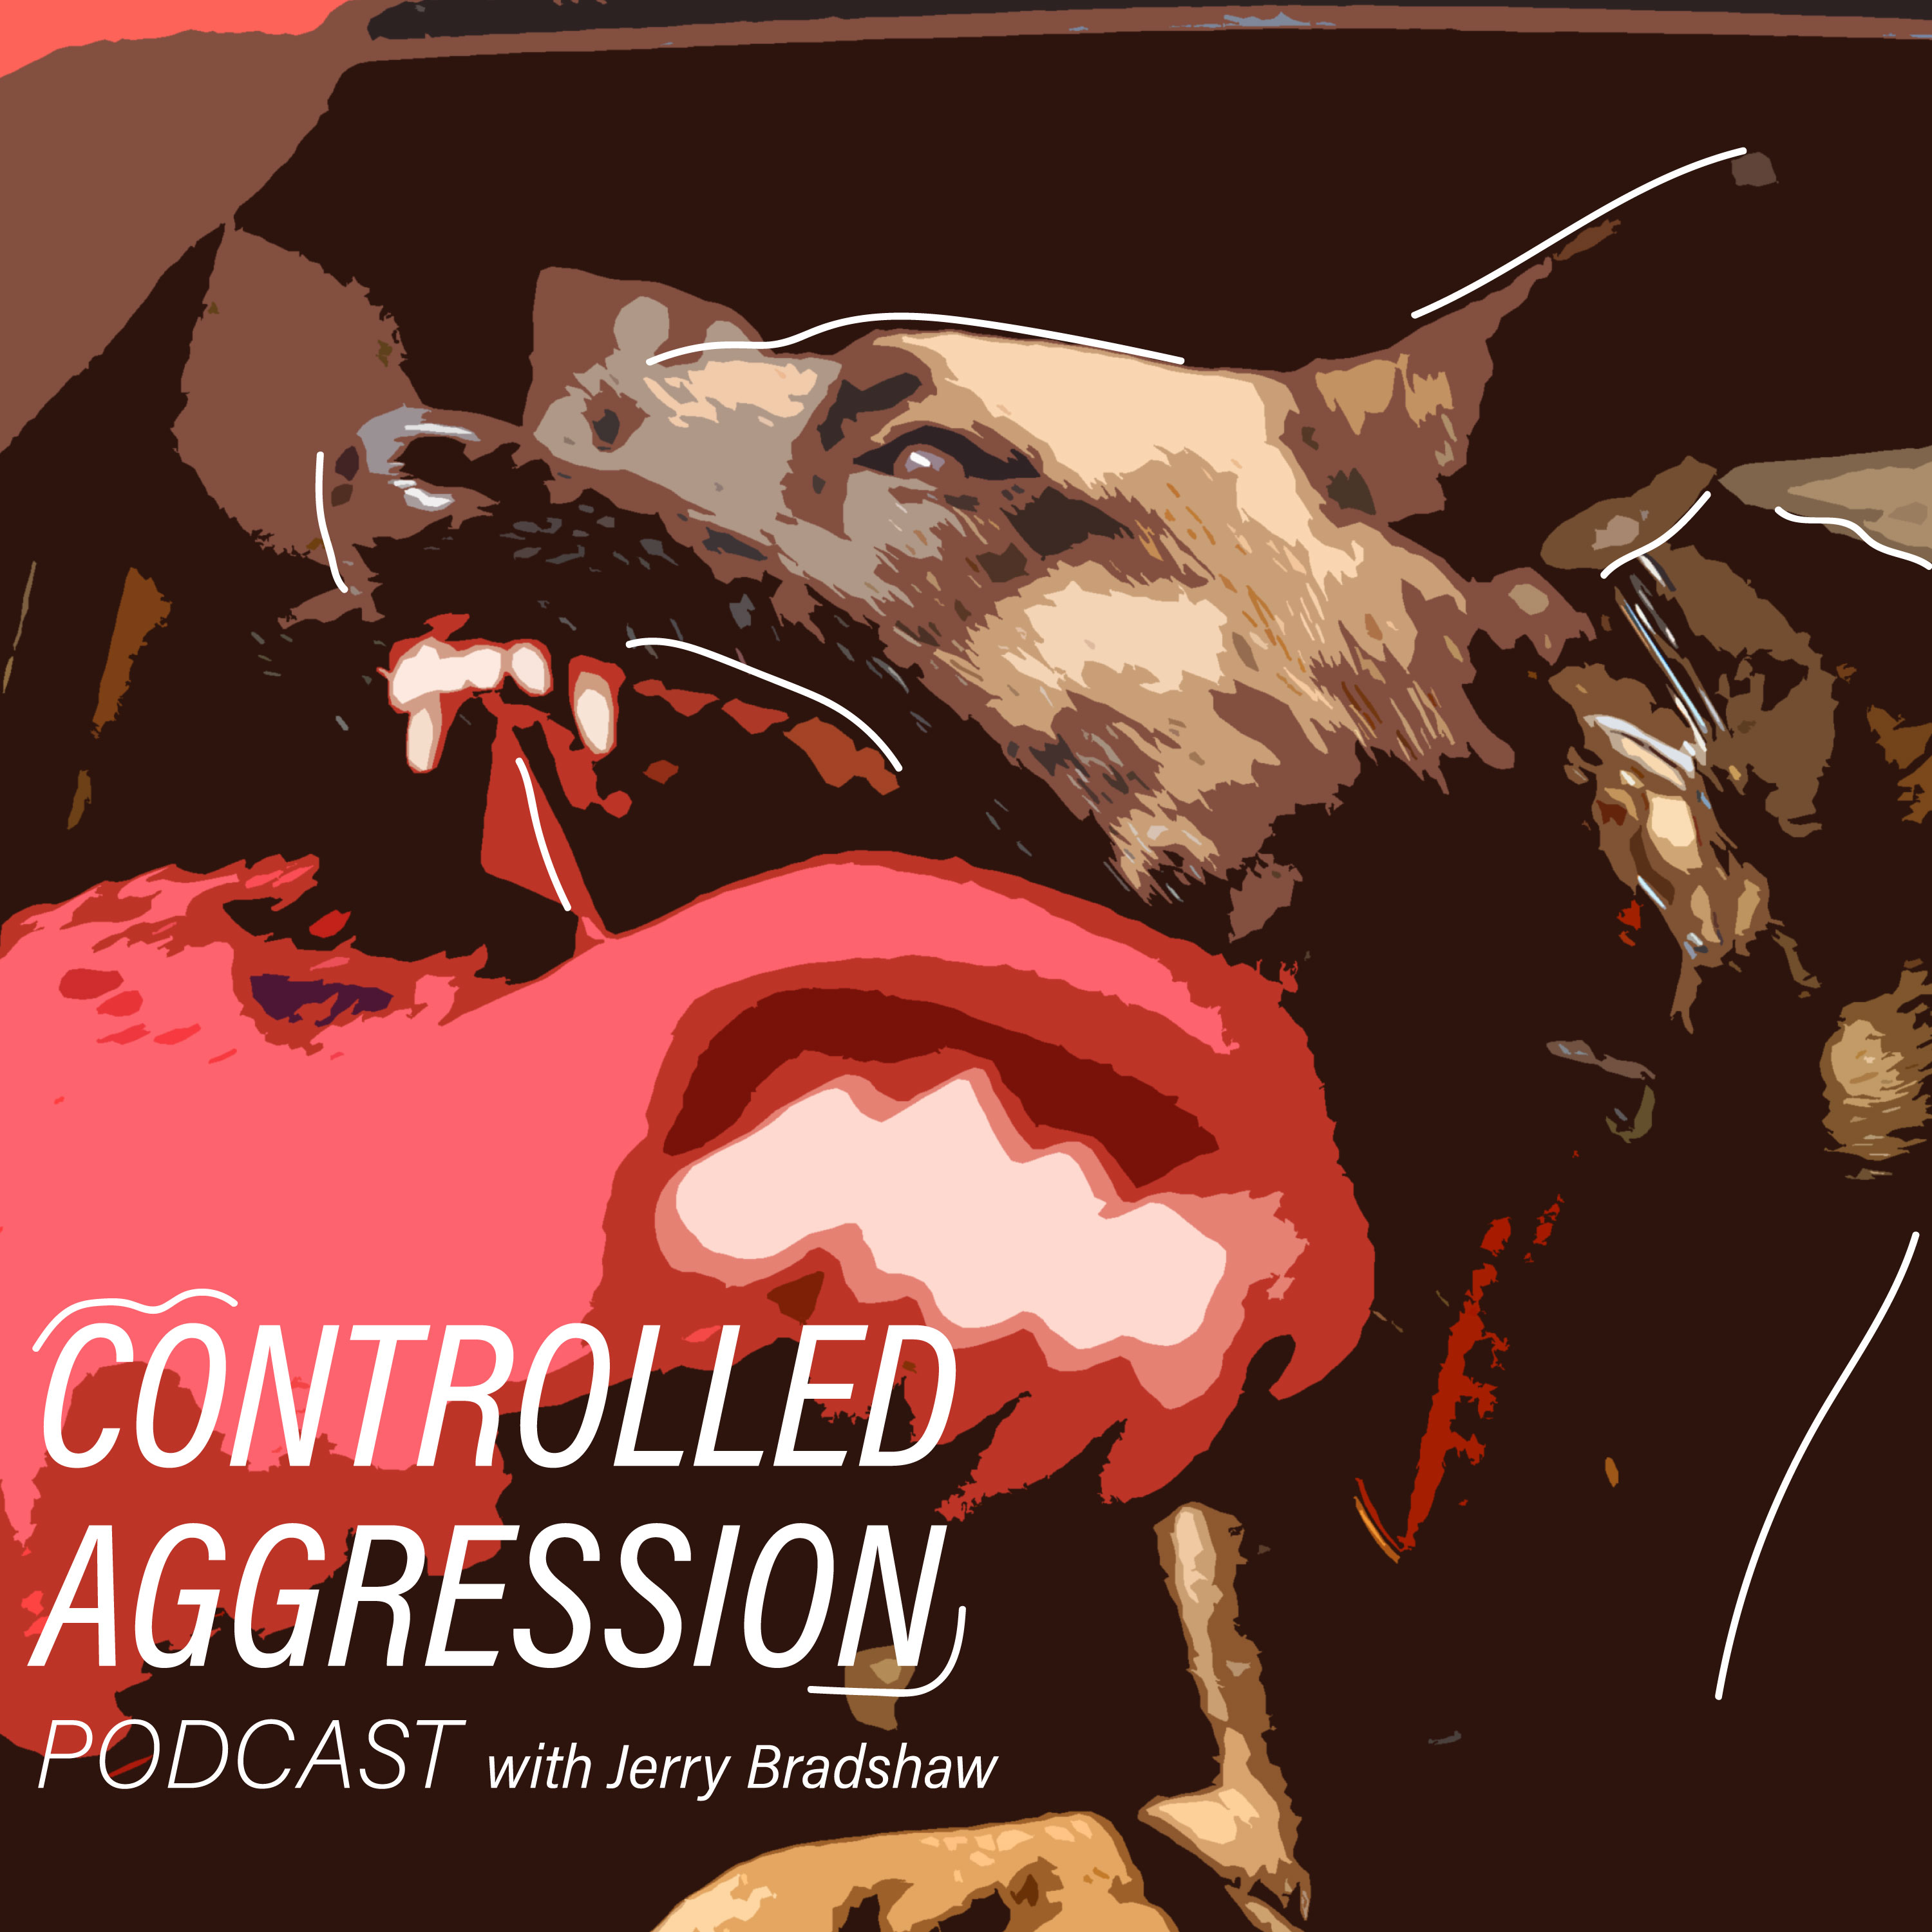 Controlled Aggression Podcast